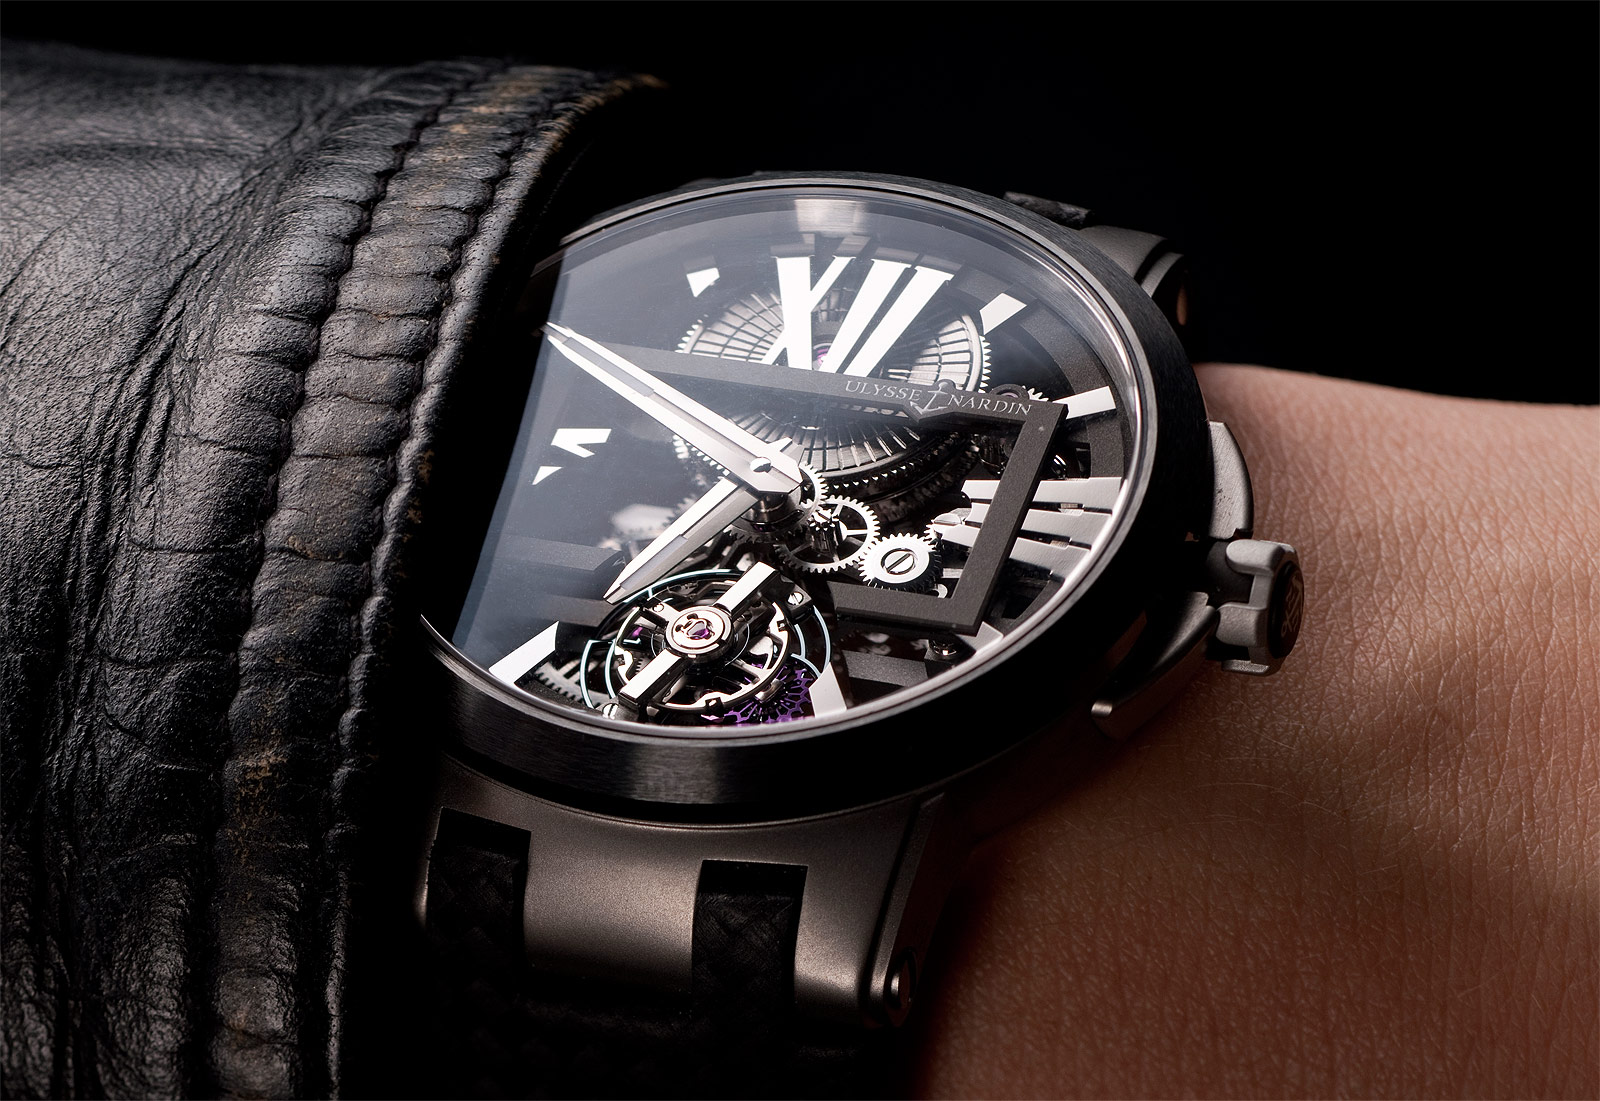 Ulysse Nardin's Executive Skeleton Tourbillon; Continuing To Redefine The Timepiece